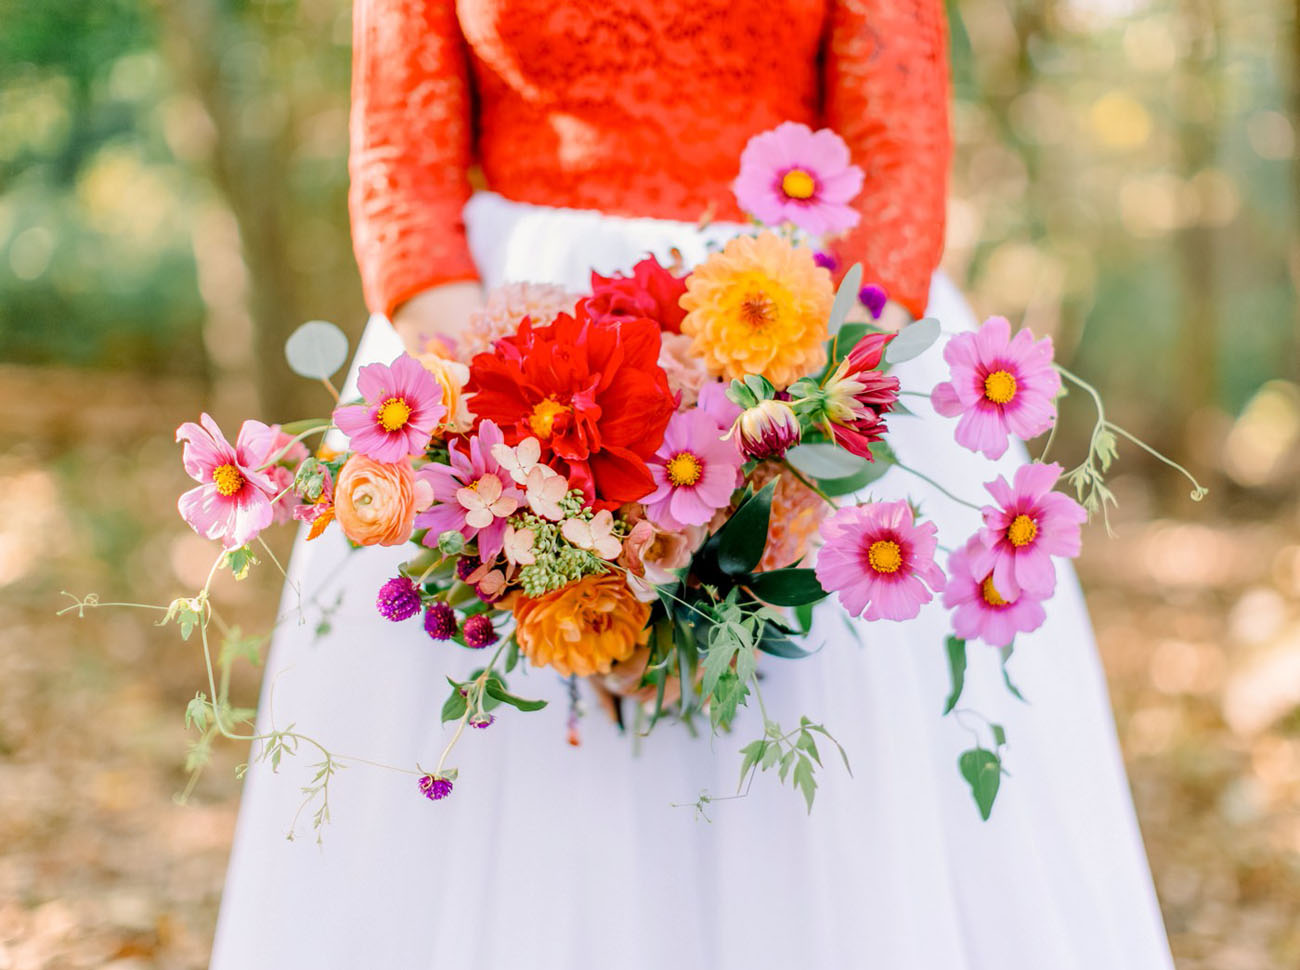 red and purple daisy bouquet